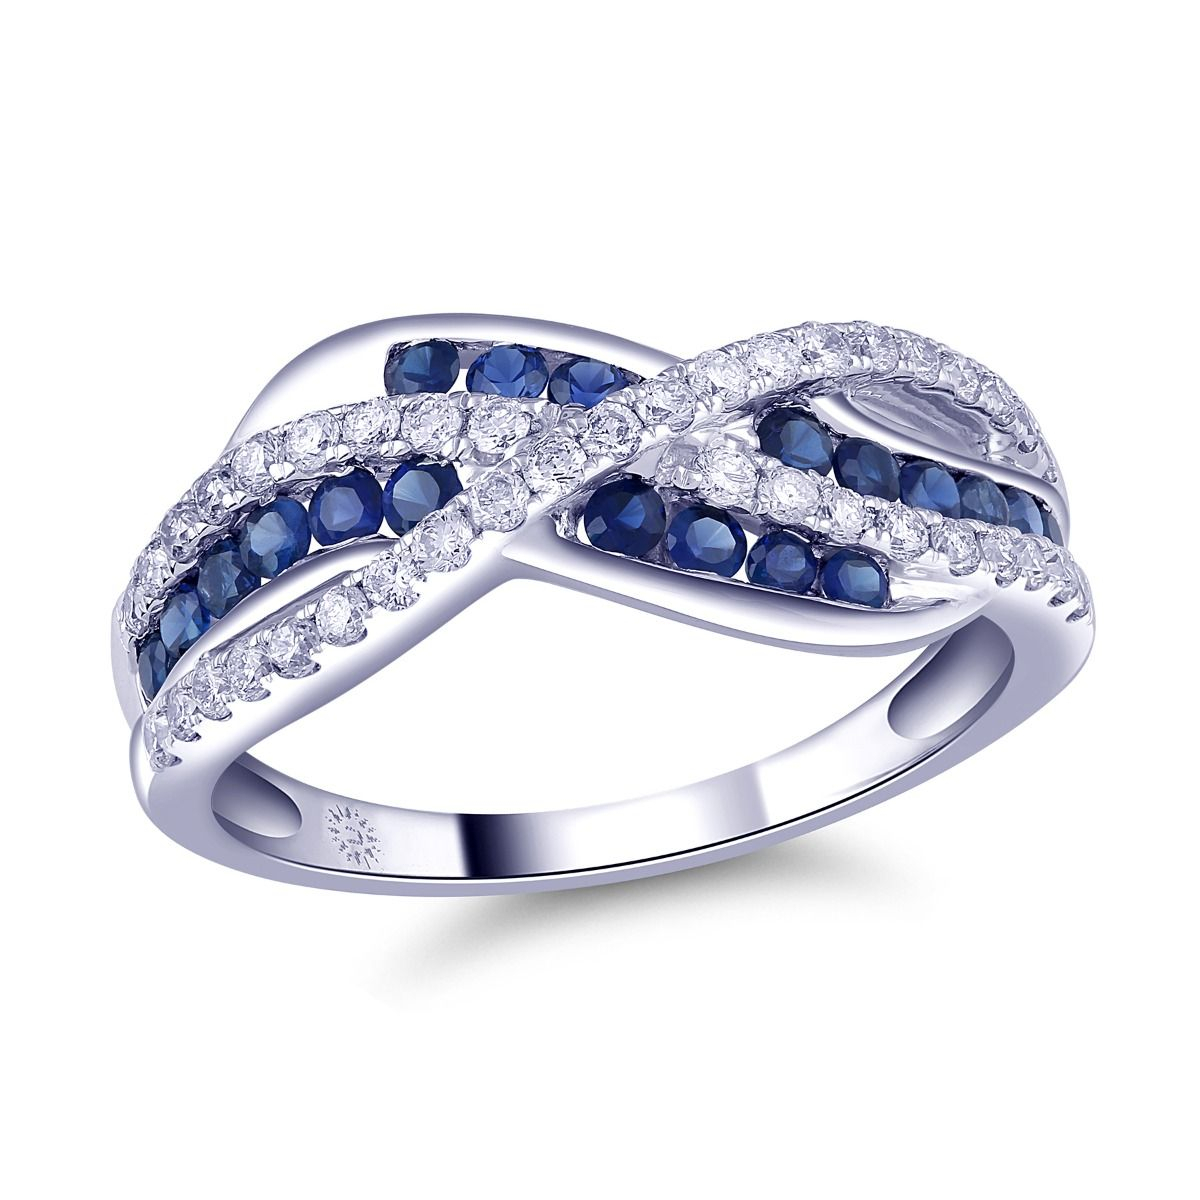 Genuine Sapphire And Diamond Multi Row Anniversary Band In 14K White Gold,  3/8Ctw With Regard To Newest Diamond Multi Row Anniversary Ring In White Gold (View 15 of 25)